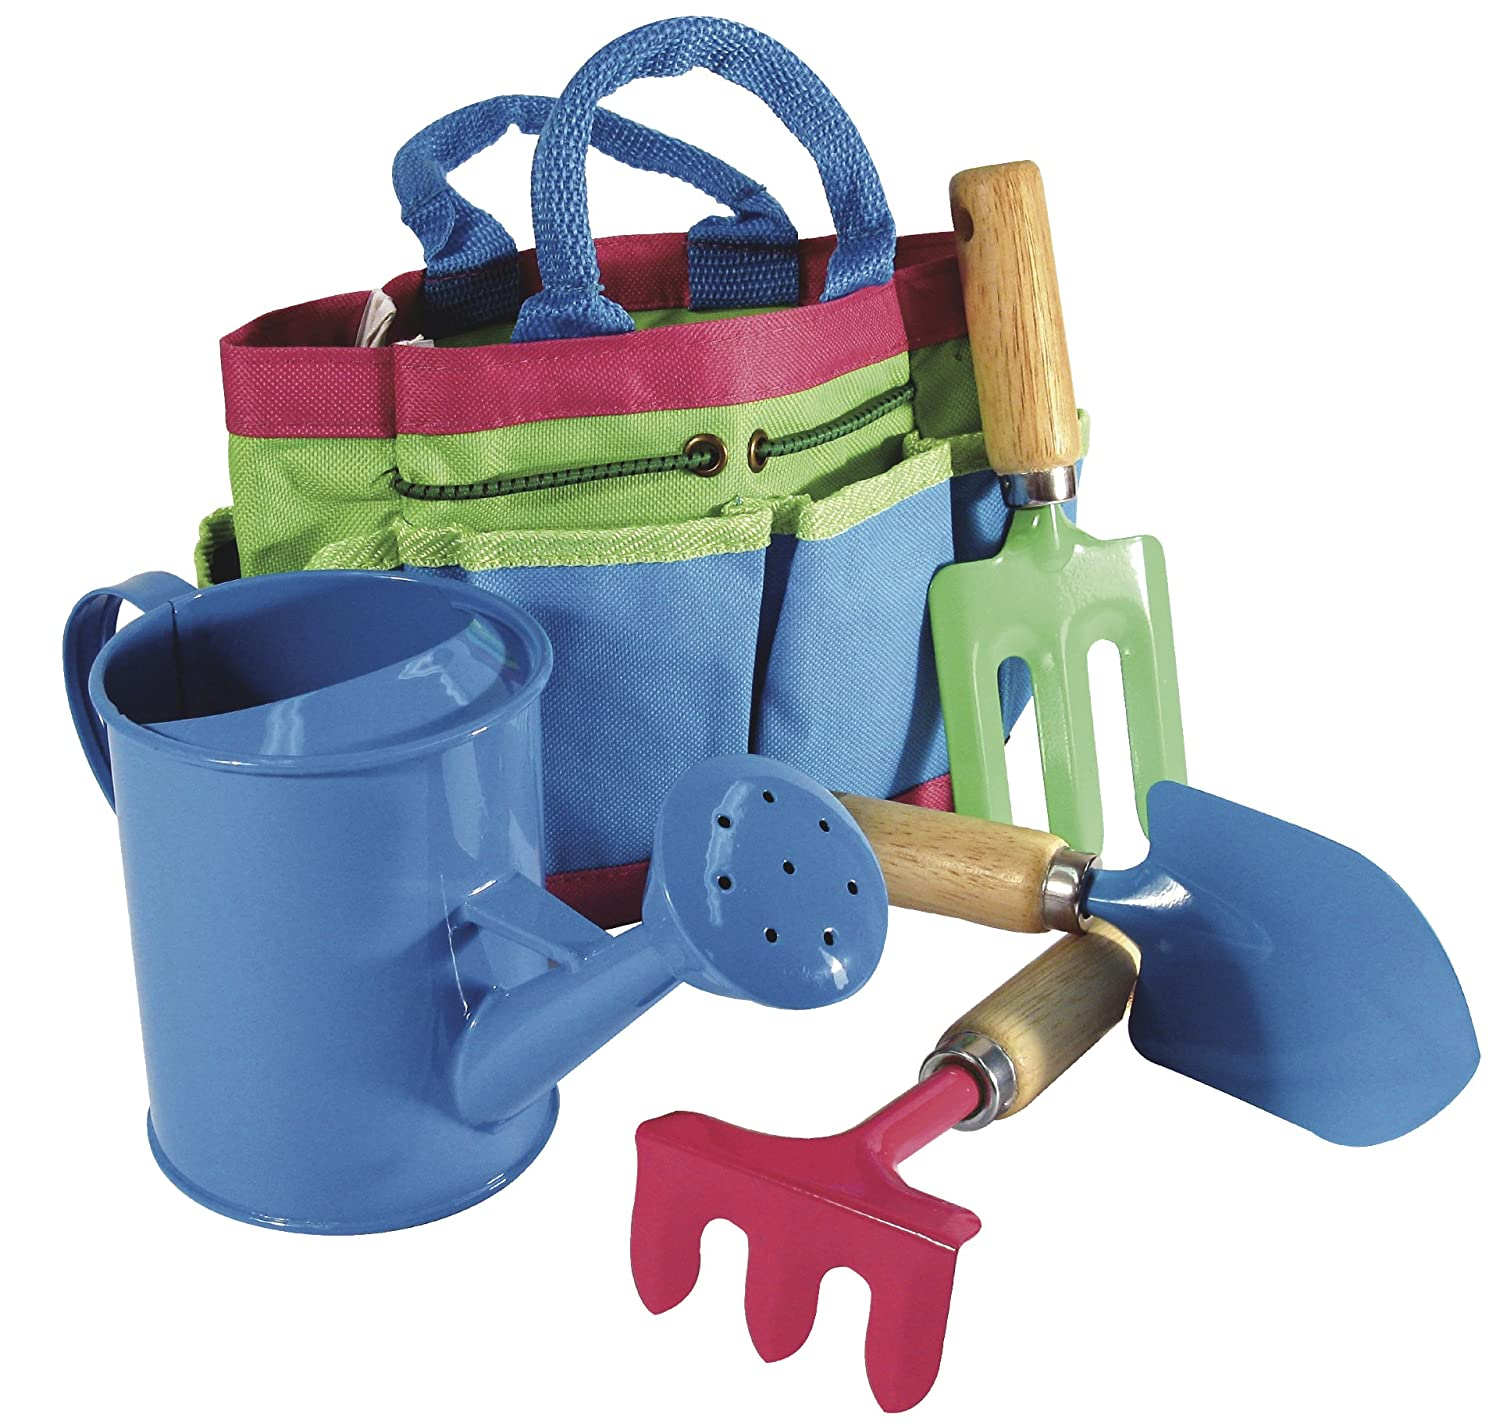 Children s Garden Tool Set House of Marbles Amazon Toys